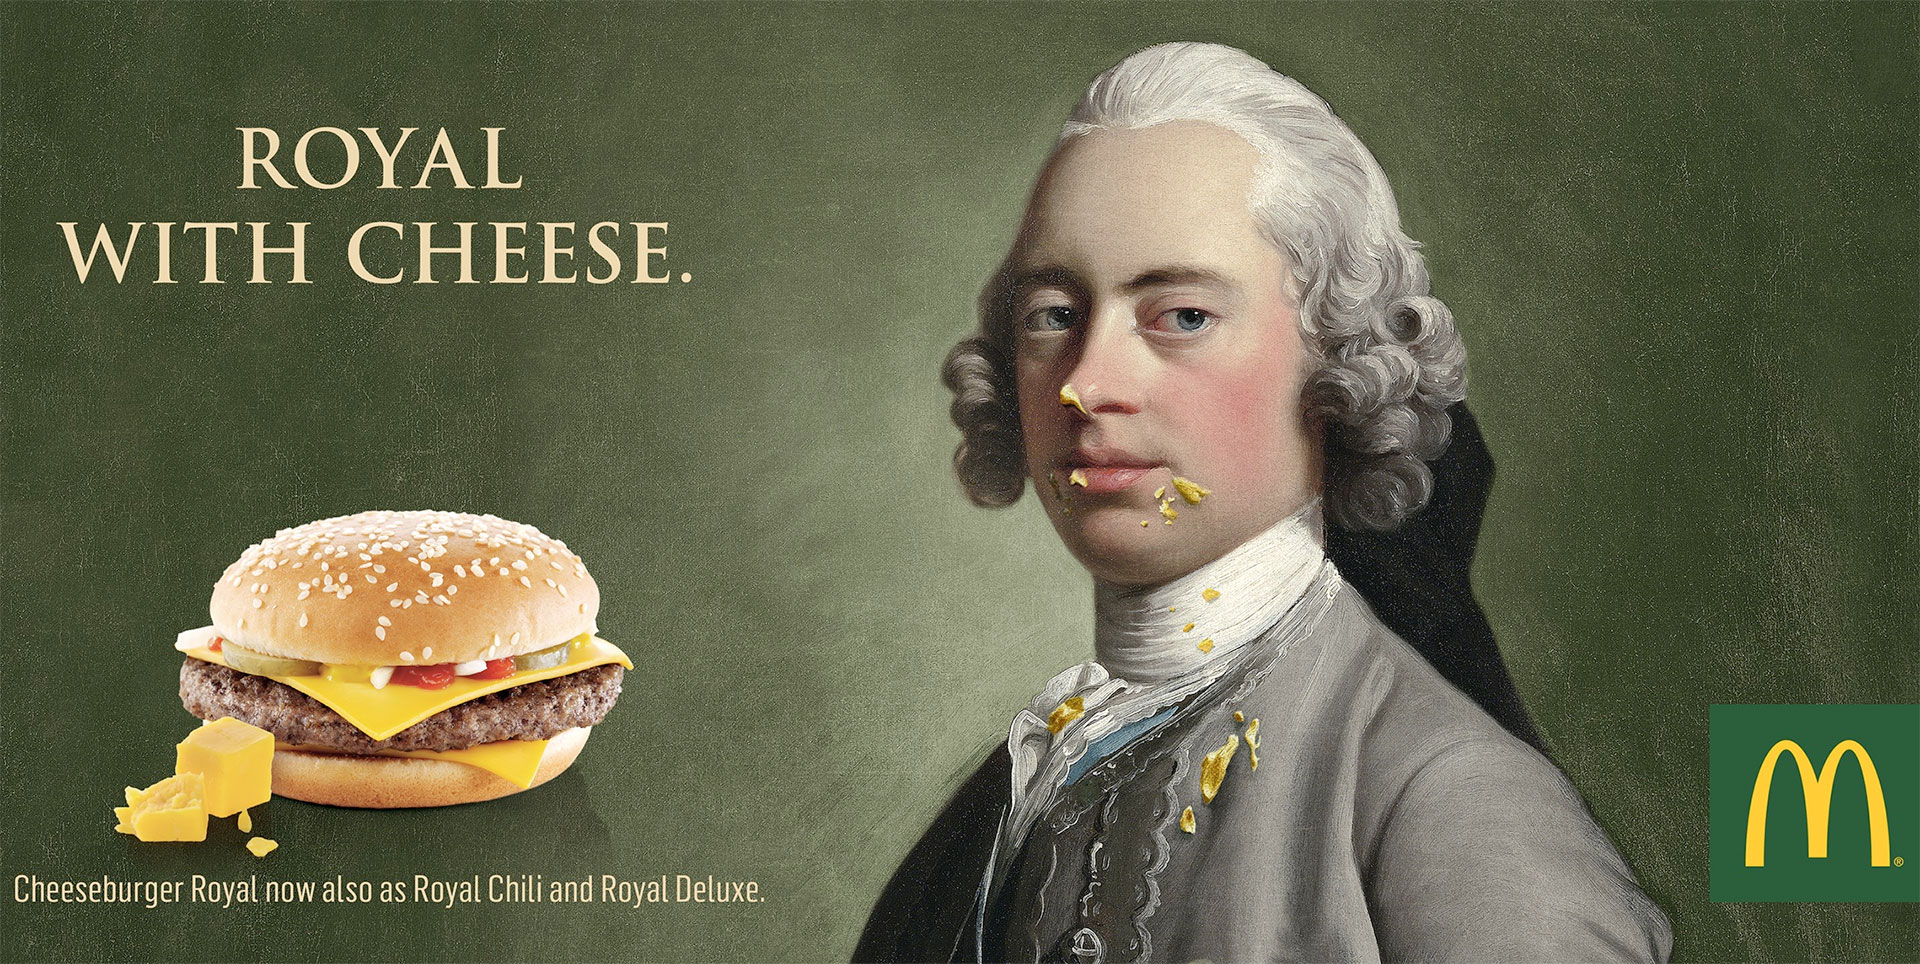 Royal with Cheese